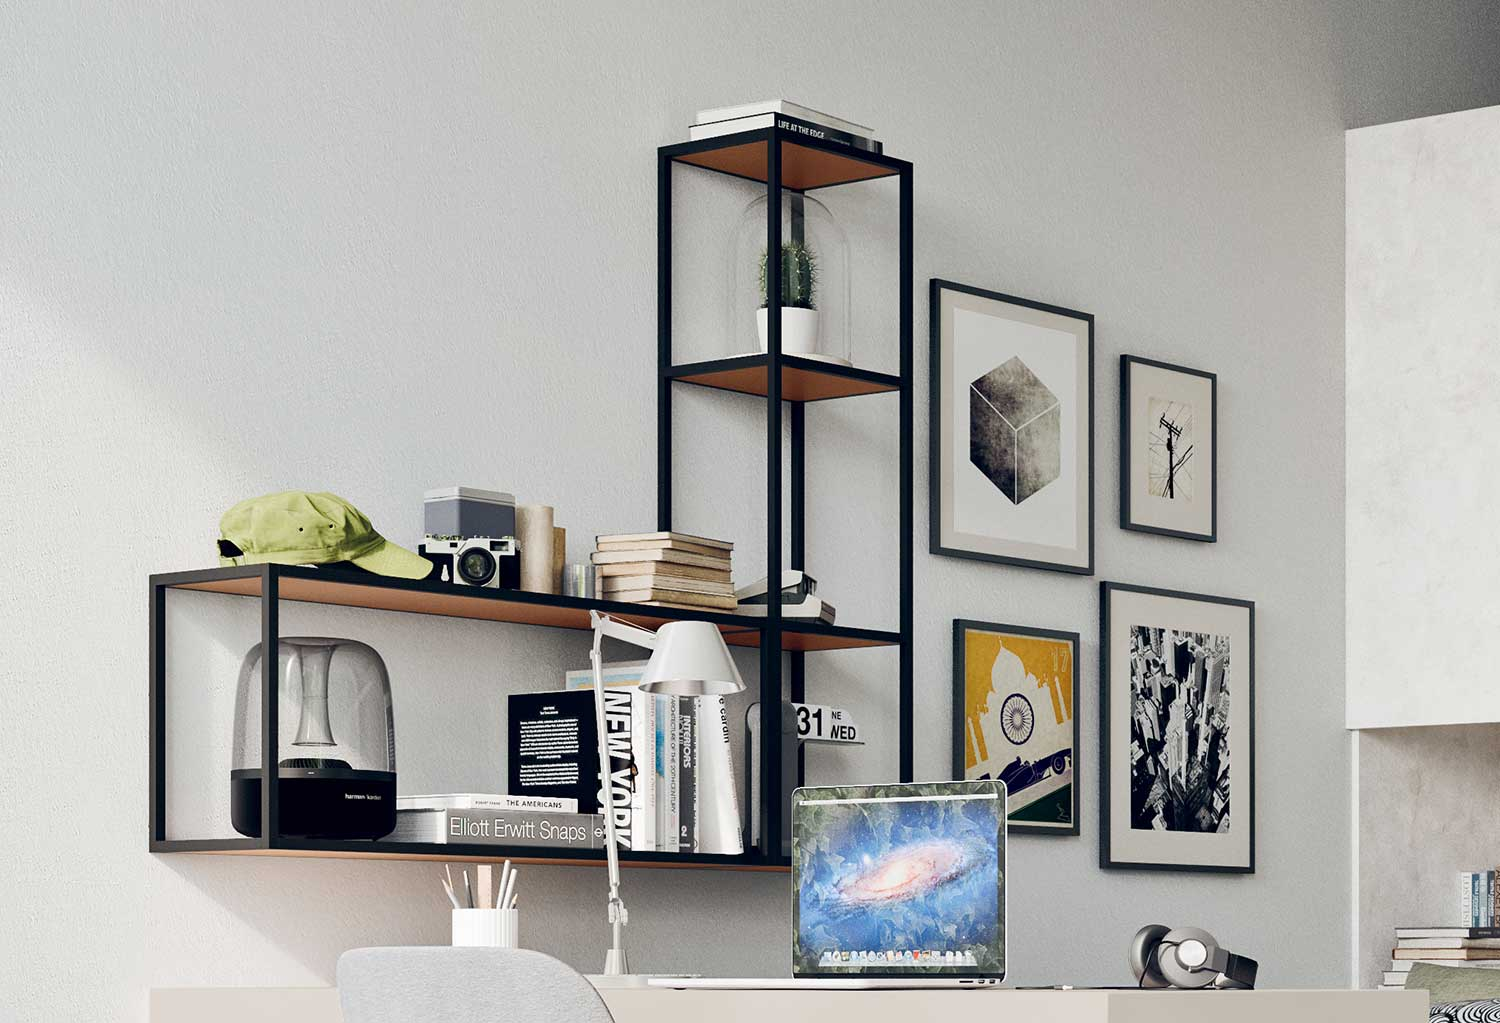 Combination of horizontal and vertical metal shelves